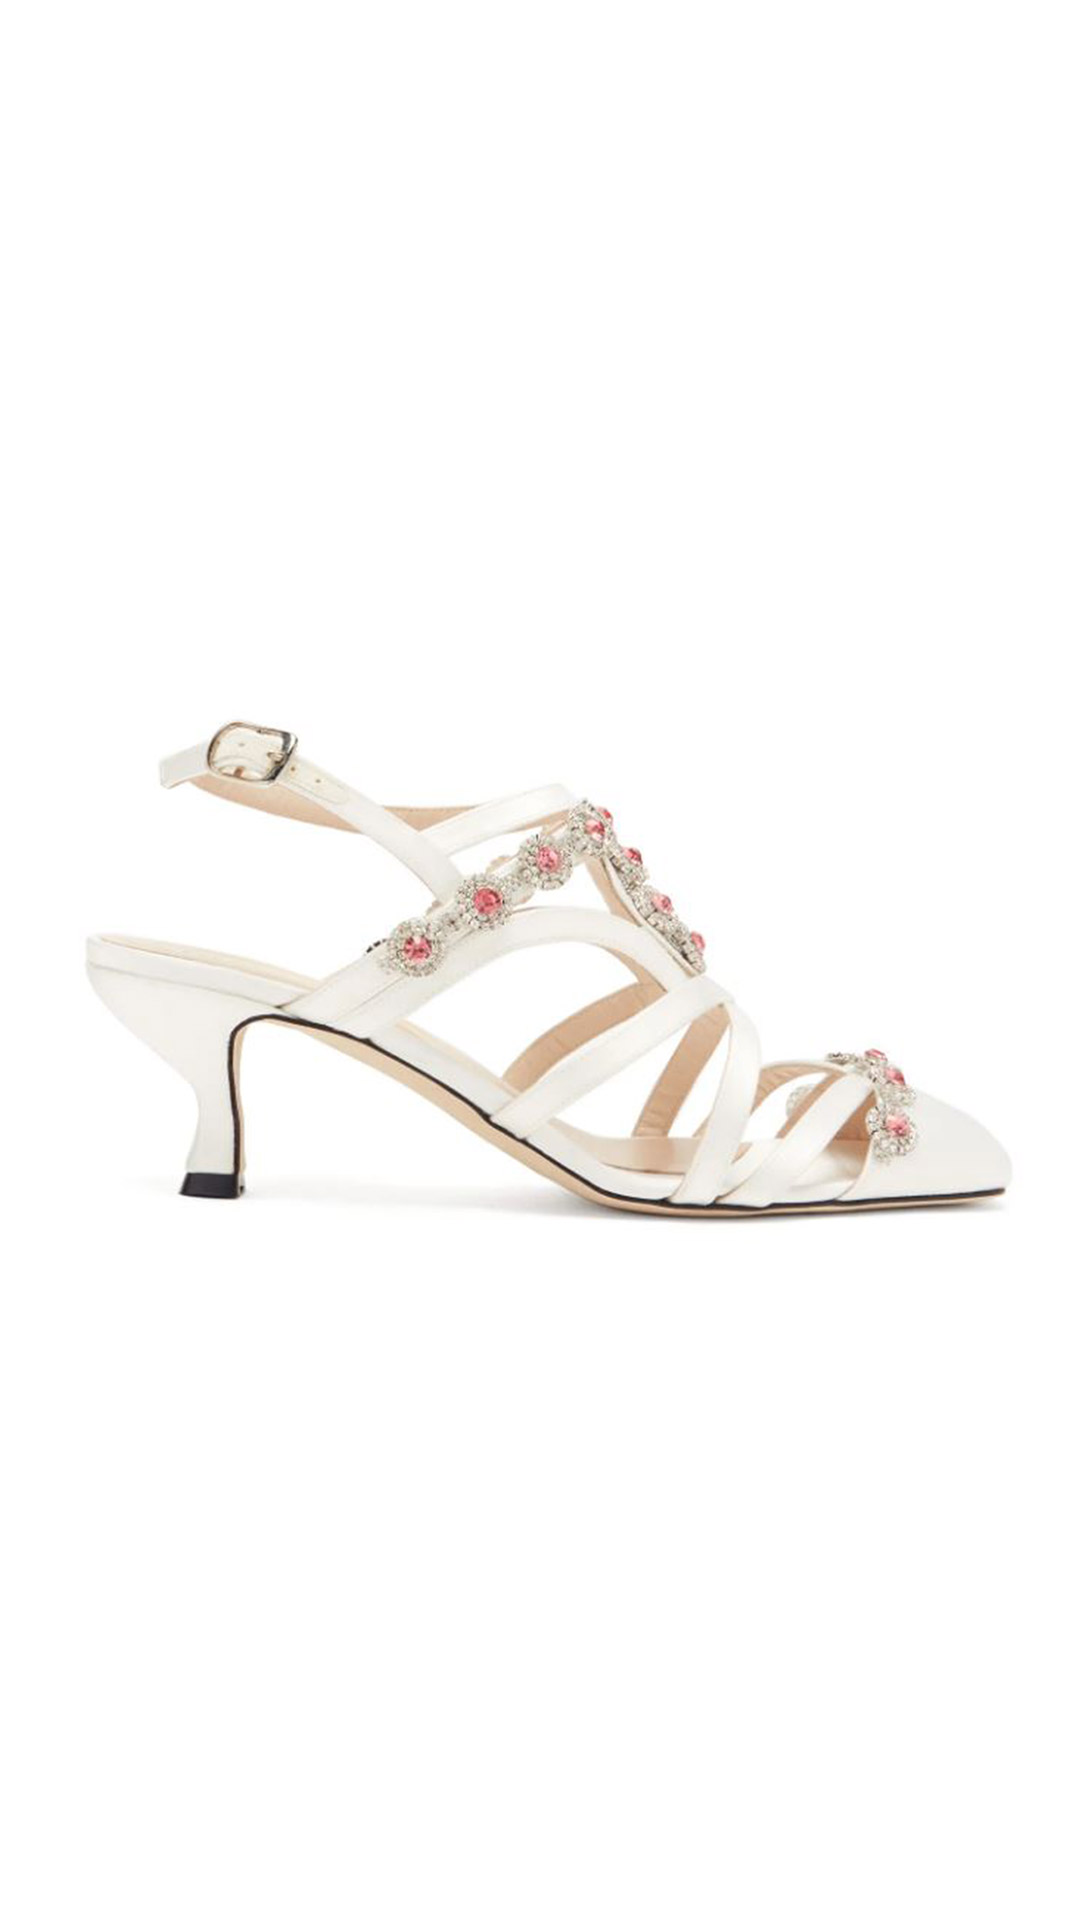 CHRISTOPHER KANE Crystal Daisy-Cupchain Sandals